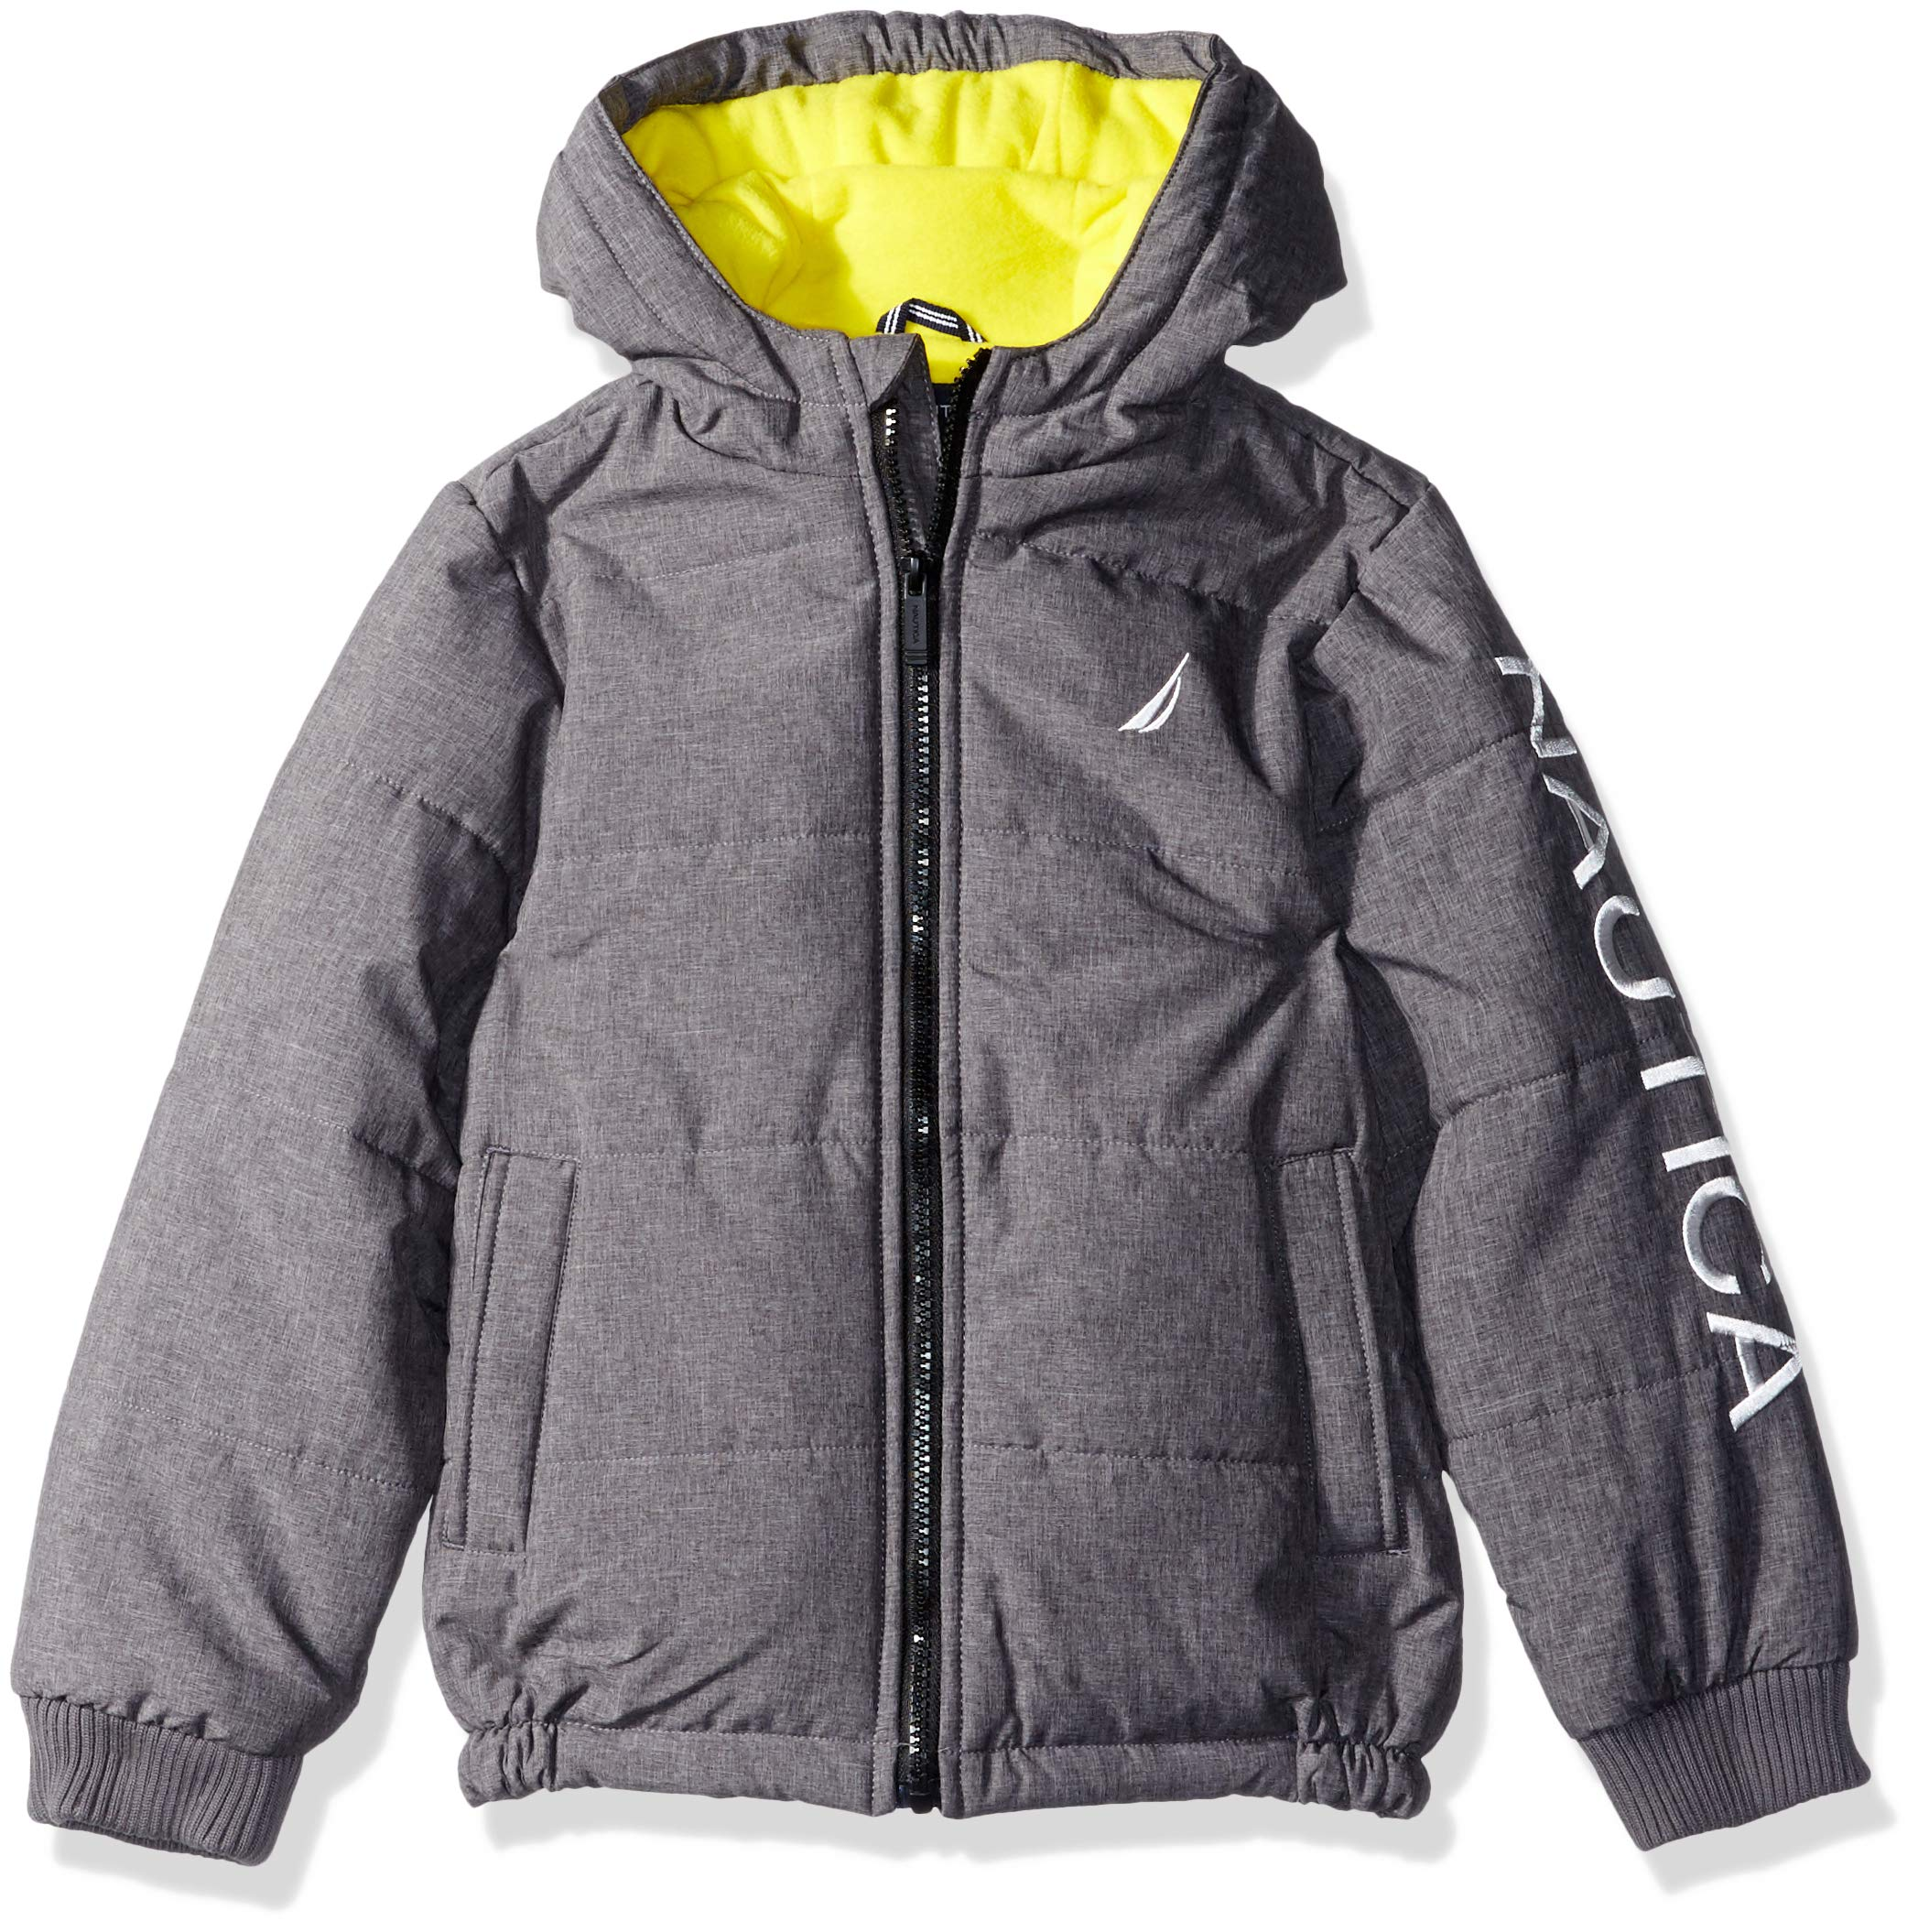 Nautica Boys' Toddler Water Resistant Signature Bubble Jacket with Storm Cuffs, Austin Coal Heather, 4T by Nautica